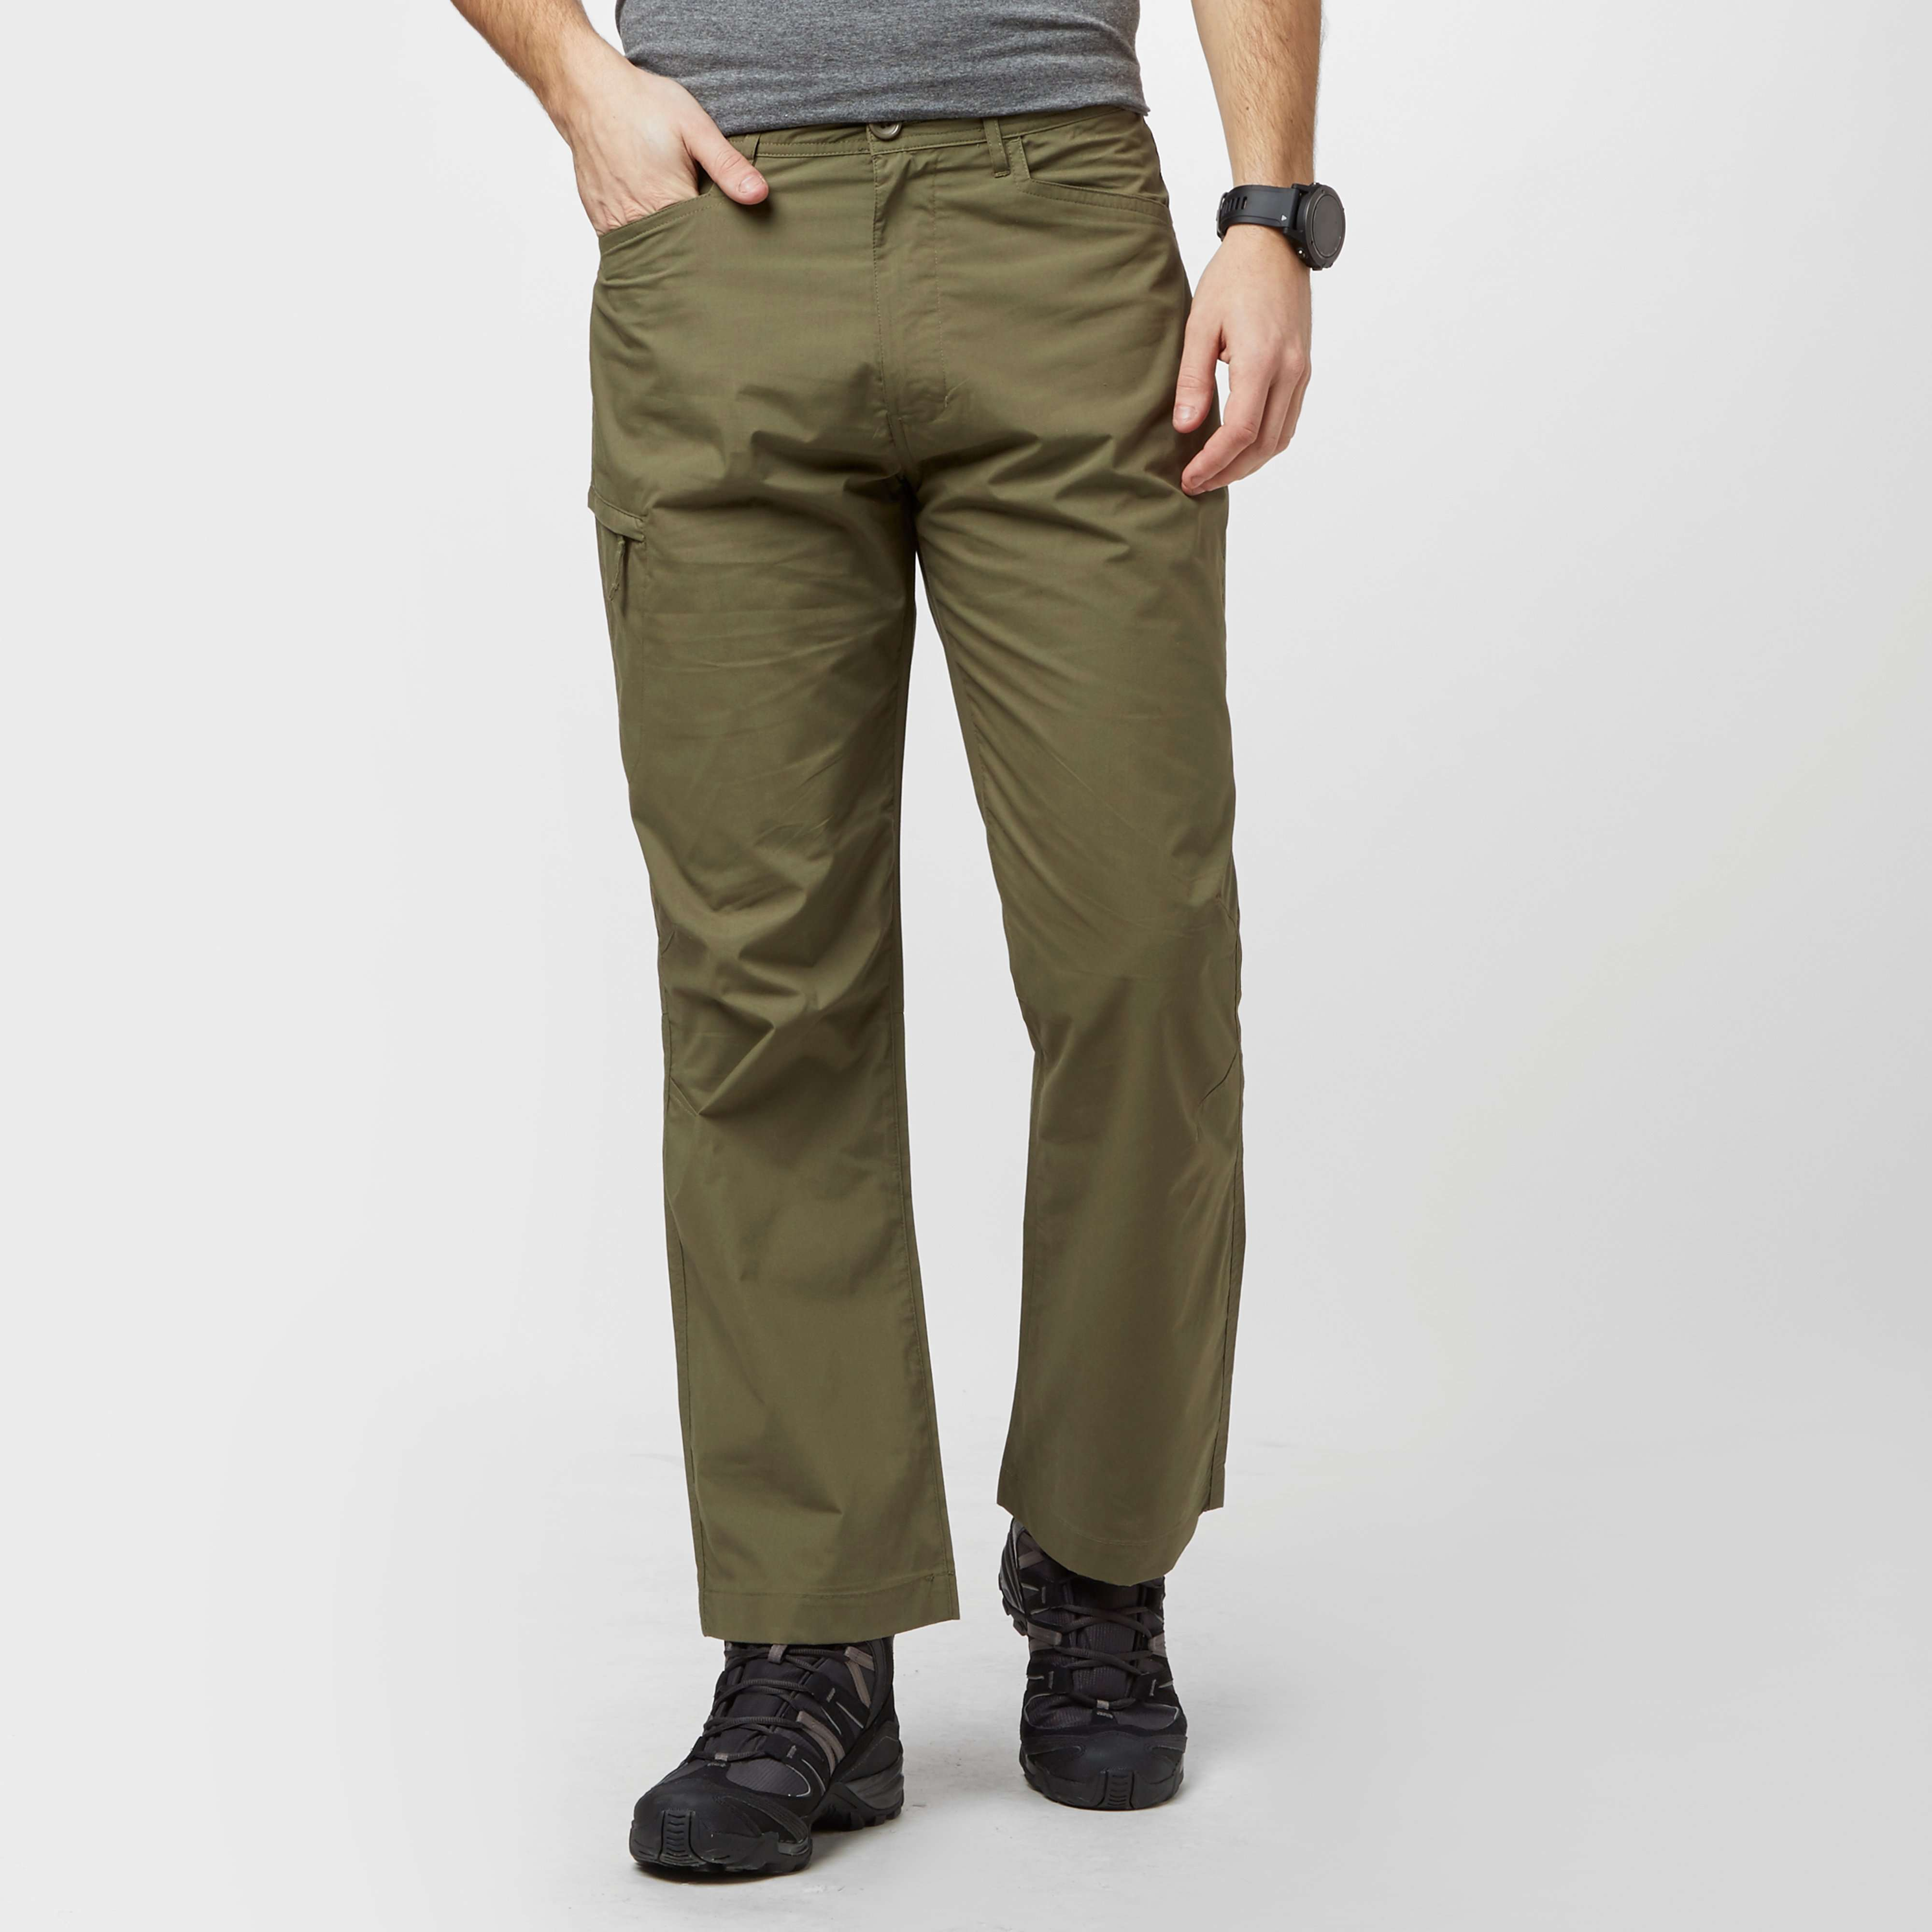 PETER STORM Men's Ramble Walking Trousers - Short